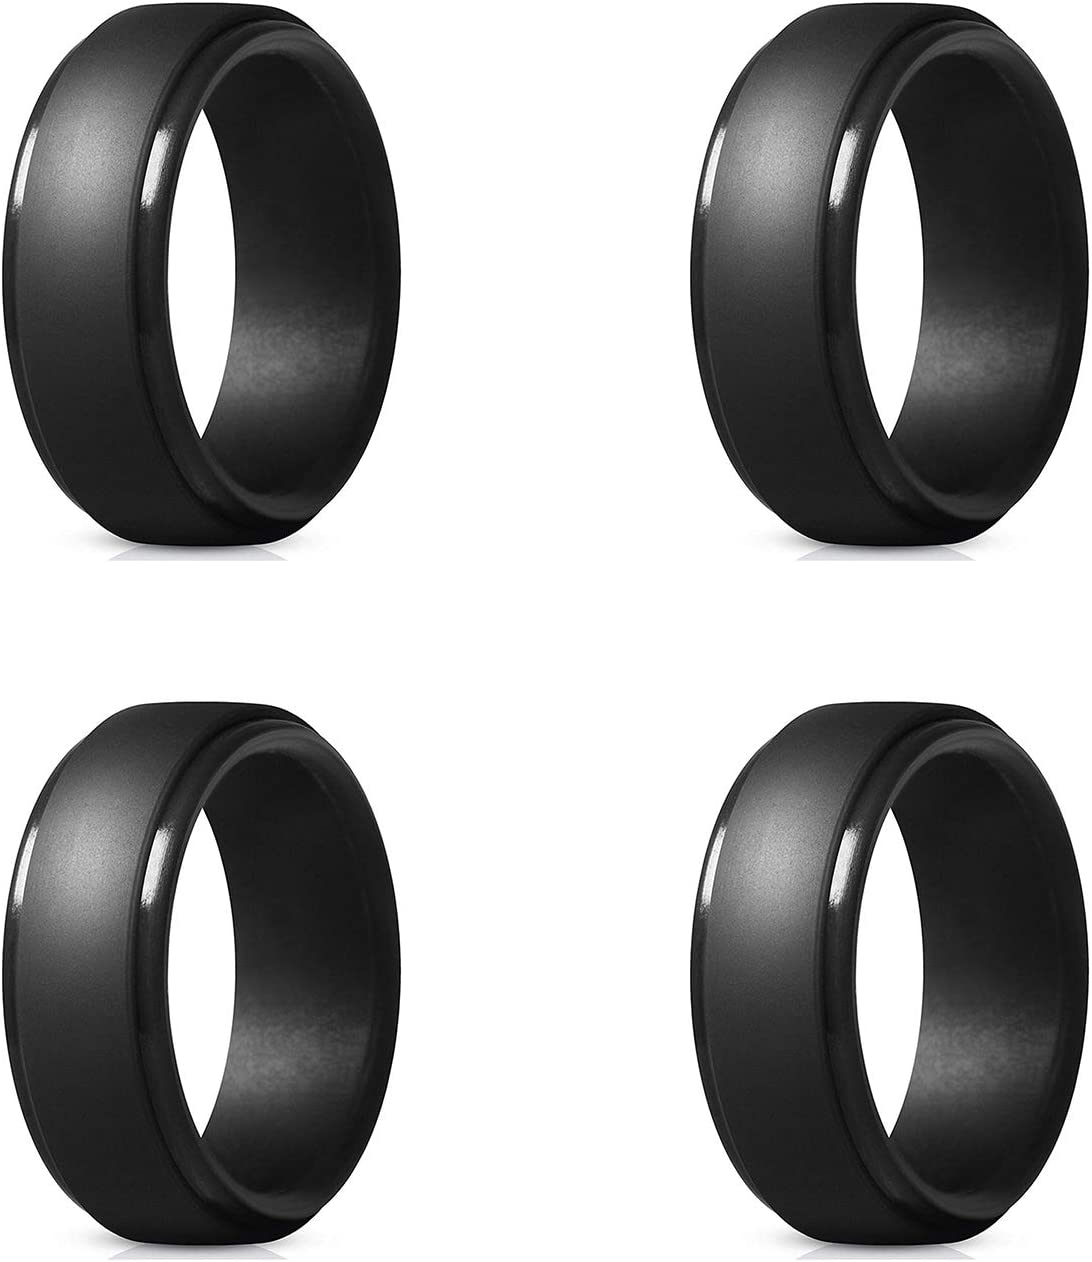 8mm Wide 2.5mm Thick KONQUER Silicone Wedding Rings Single Ring and 4 Pack Comfortable and Flexible Rubber Wedding Band for Men with Step-Edge Design